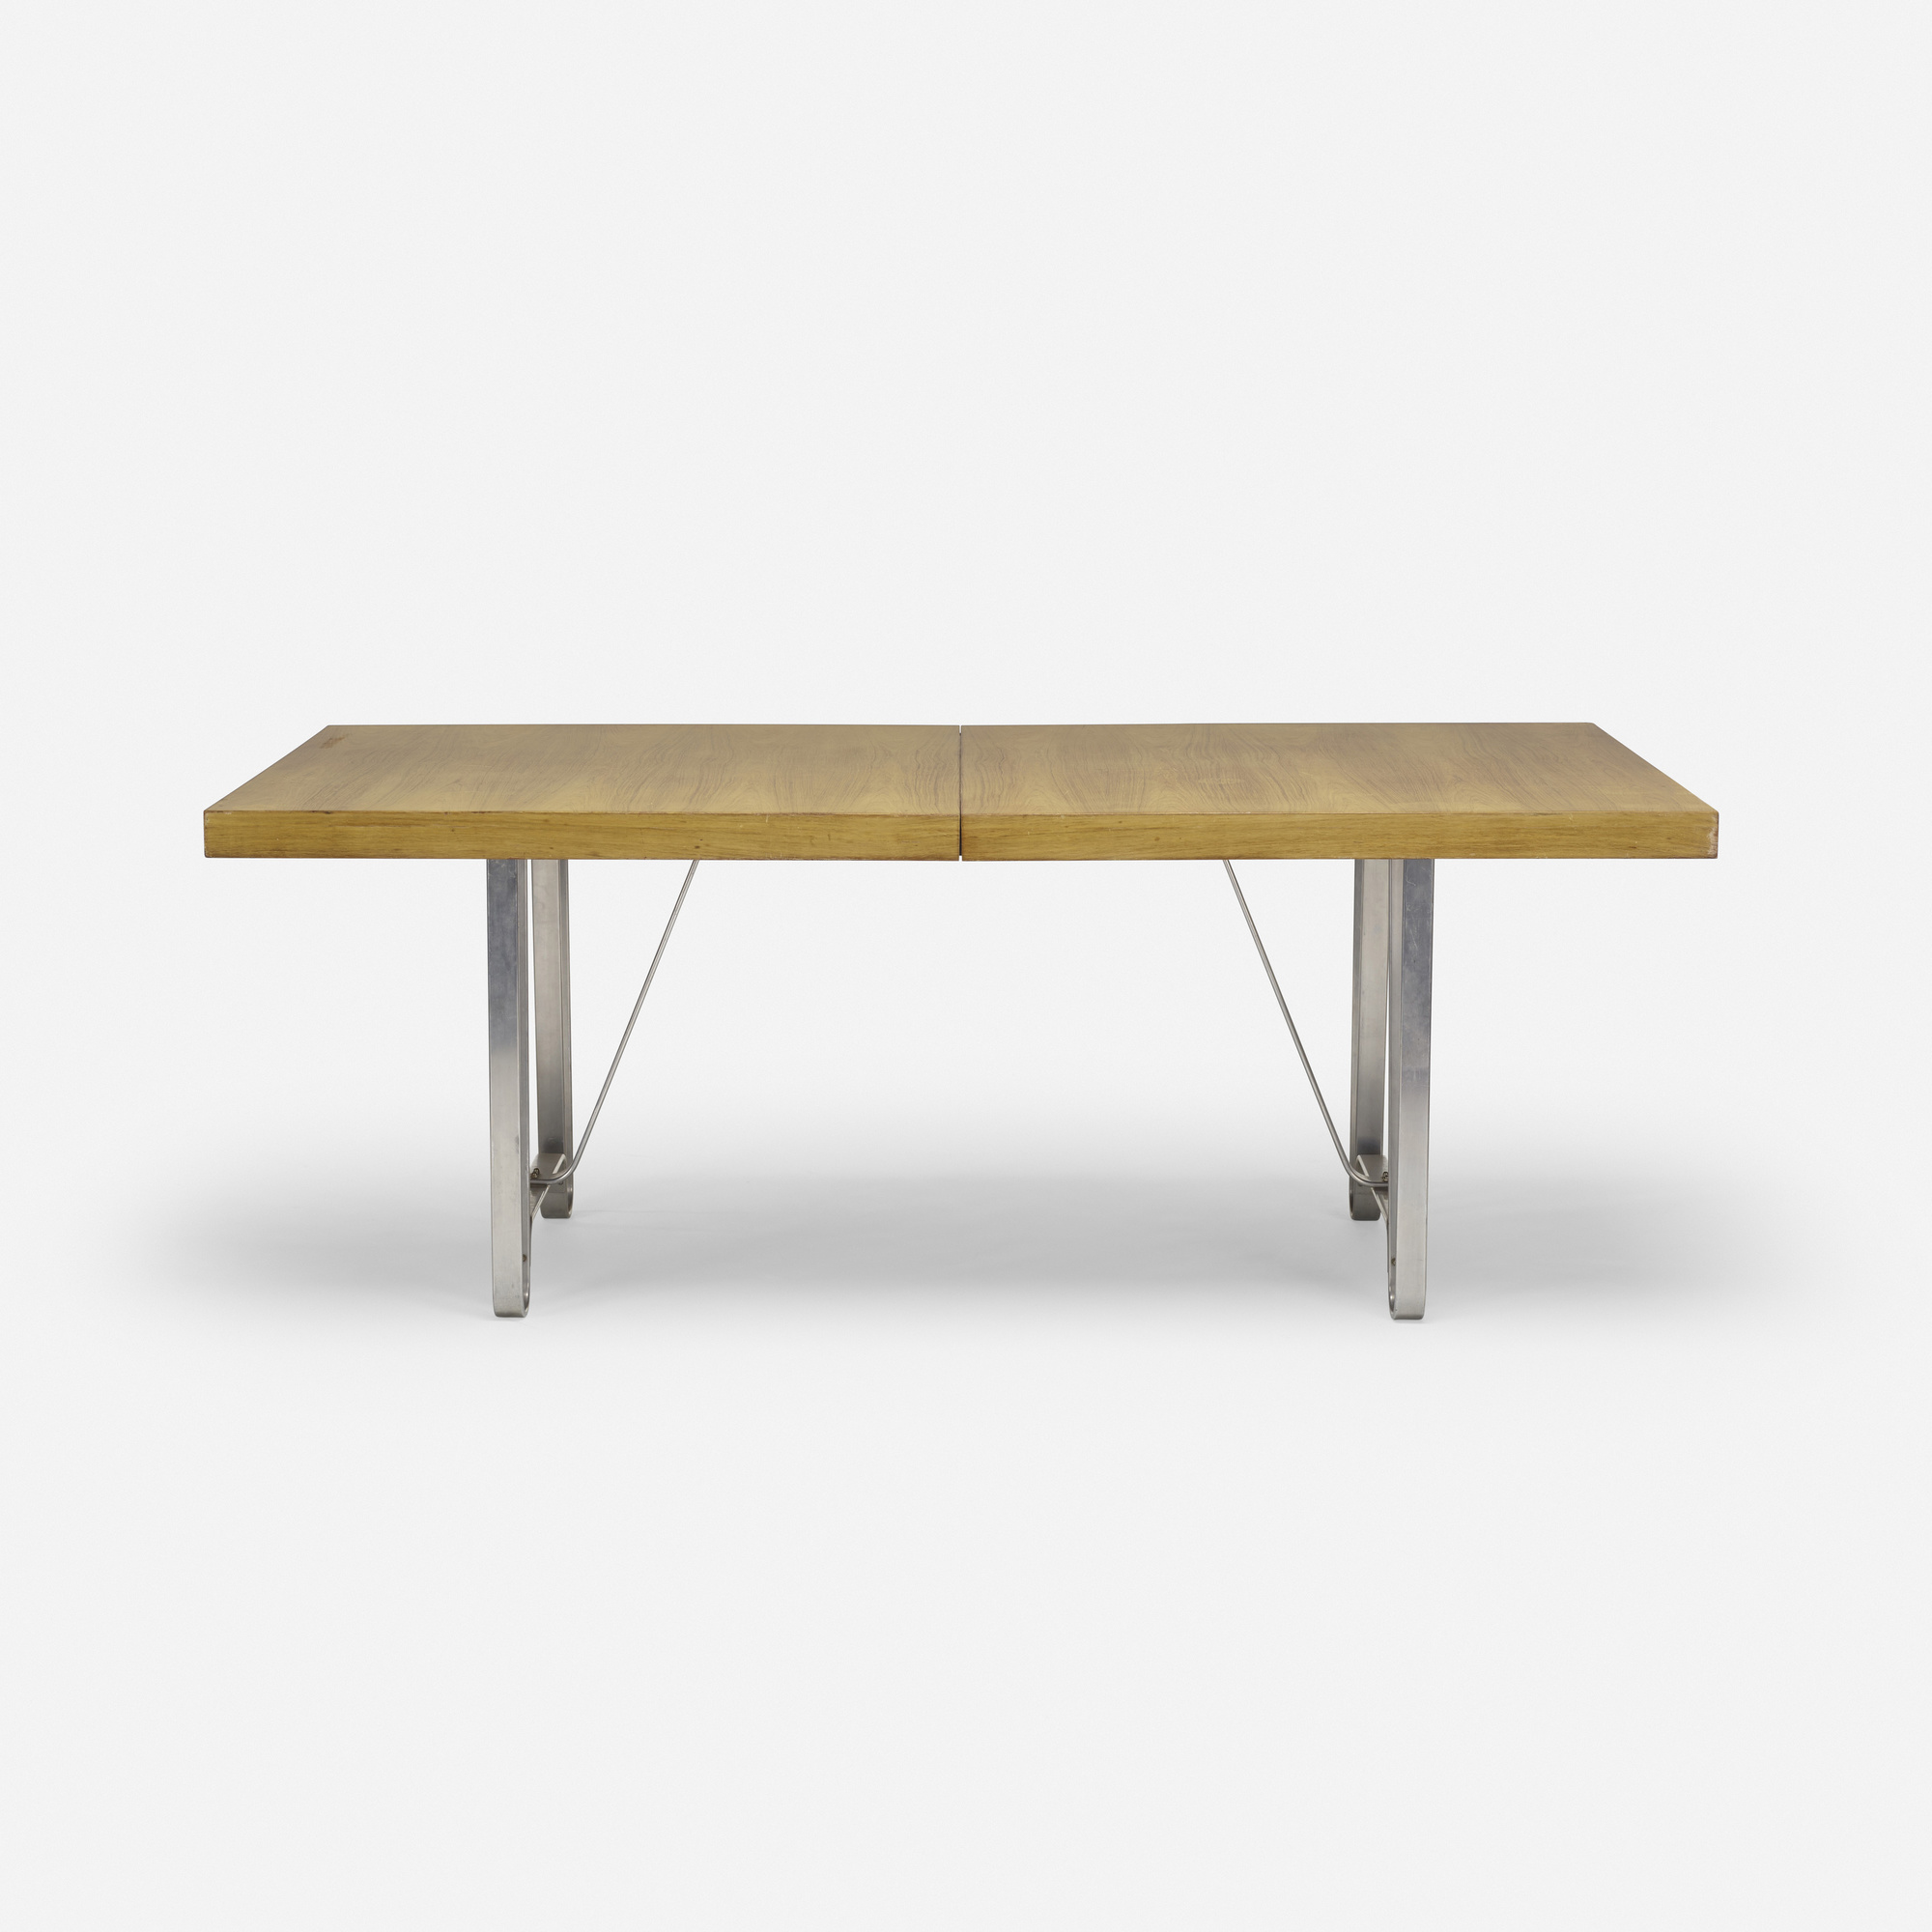 516: Machine Age / dining table (3 of 4)